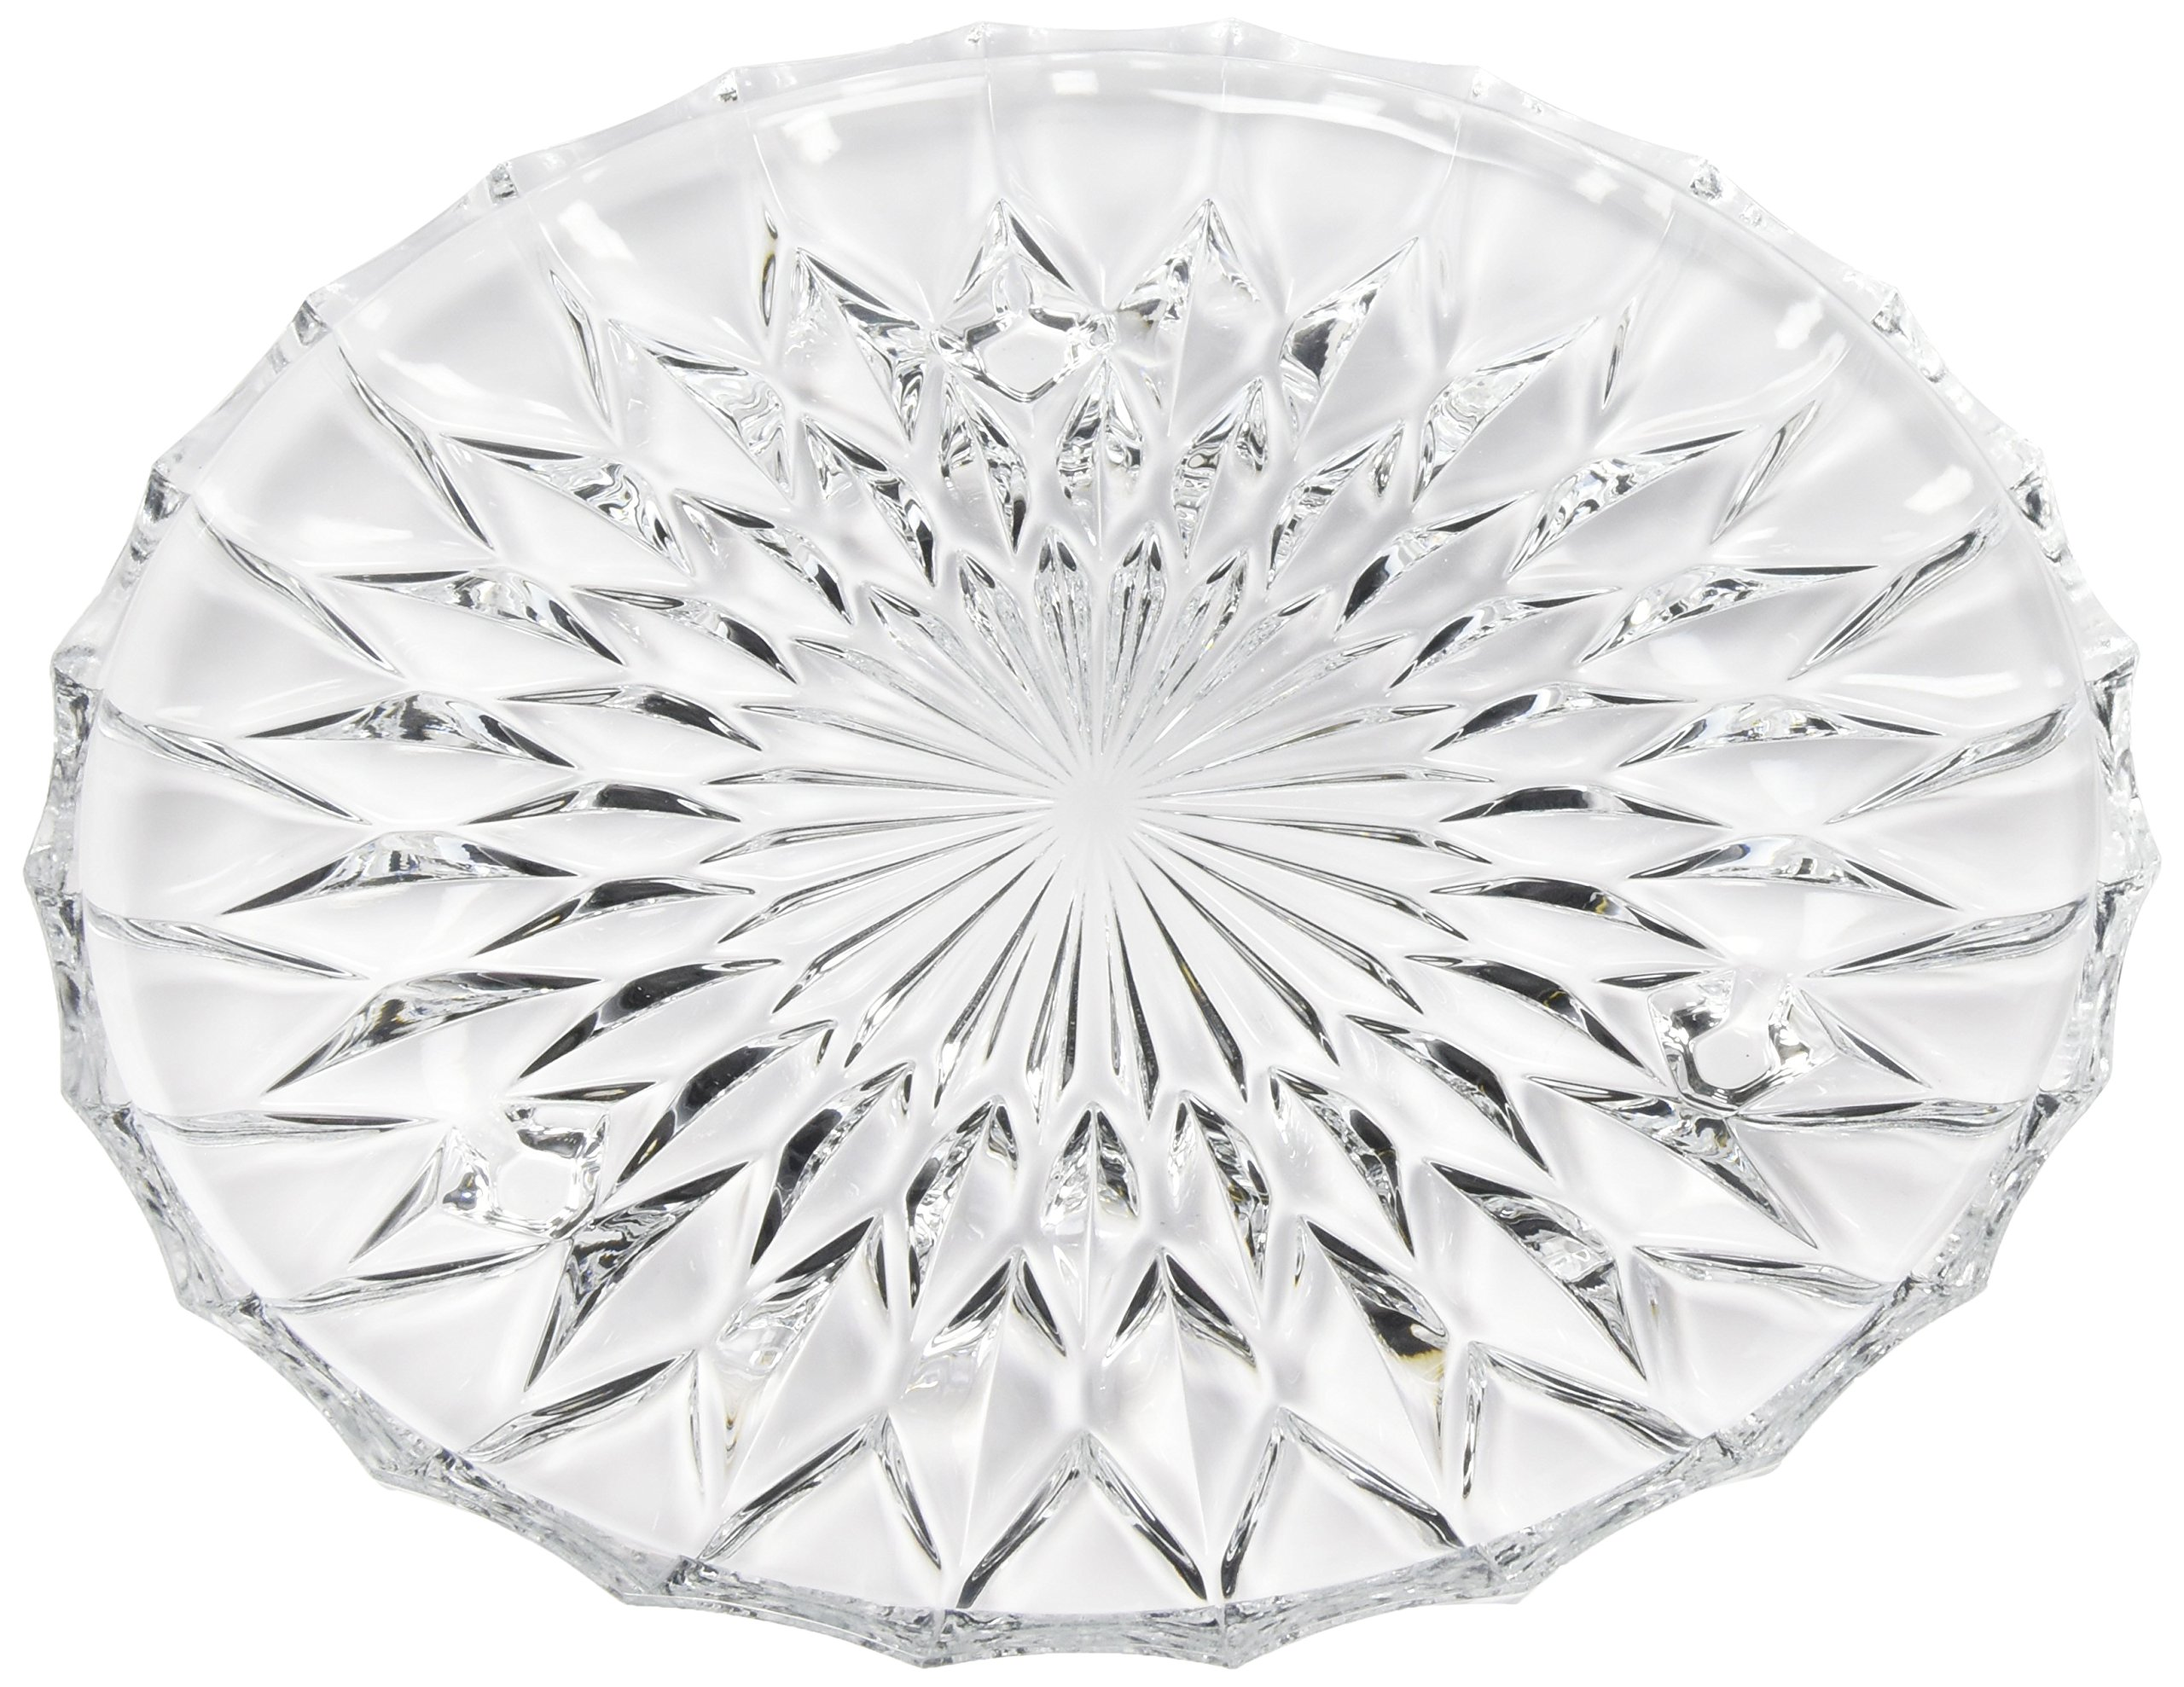 Marquis By Waterford 40031912 Medforde Tray 12'' by Marquis By Waterford